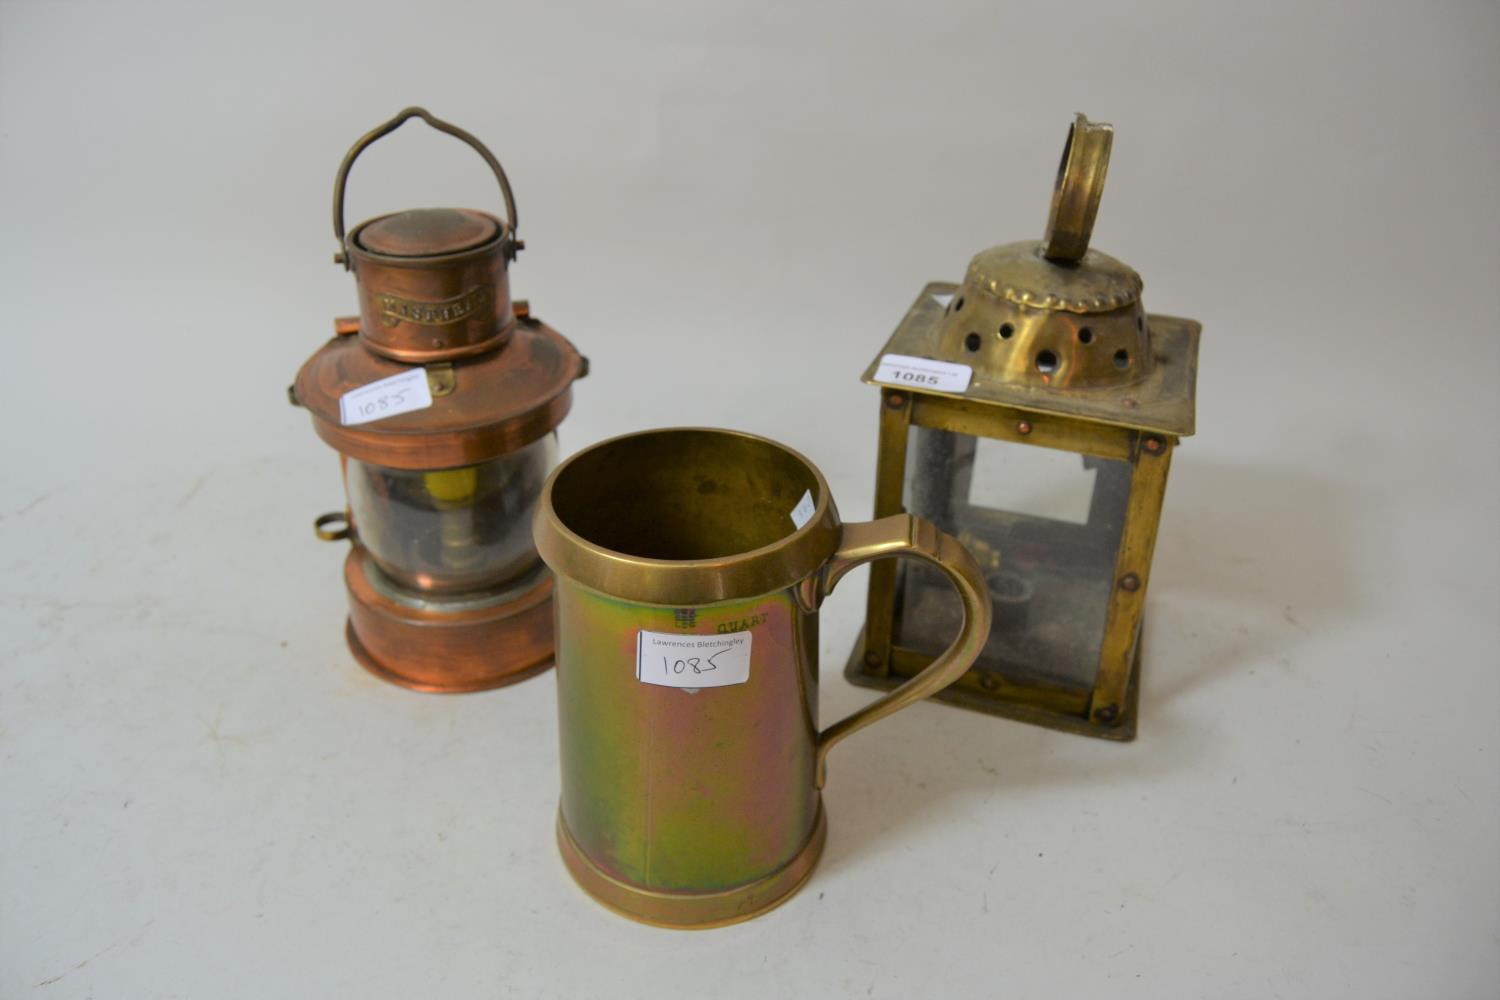 Brass and copper studded square hanging lantern, 10ins high, reproduction copper ships lantern and a